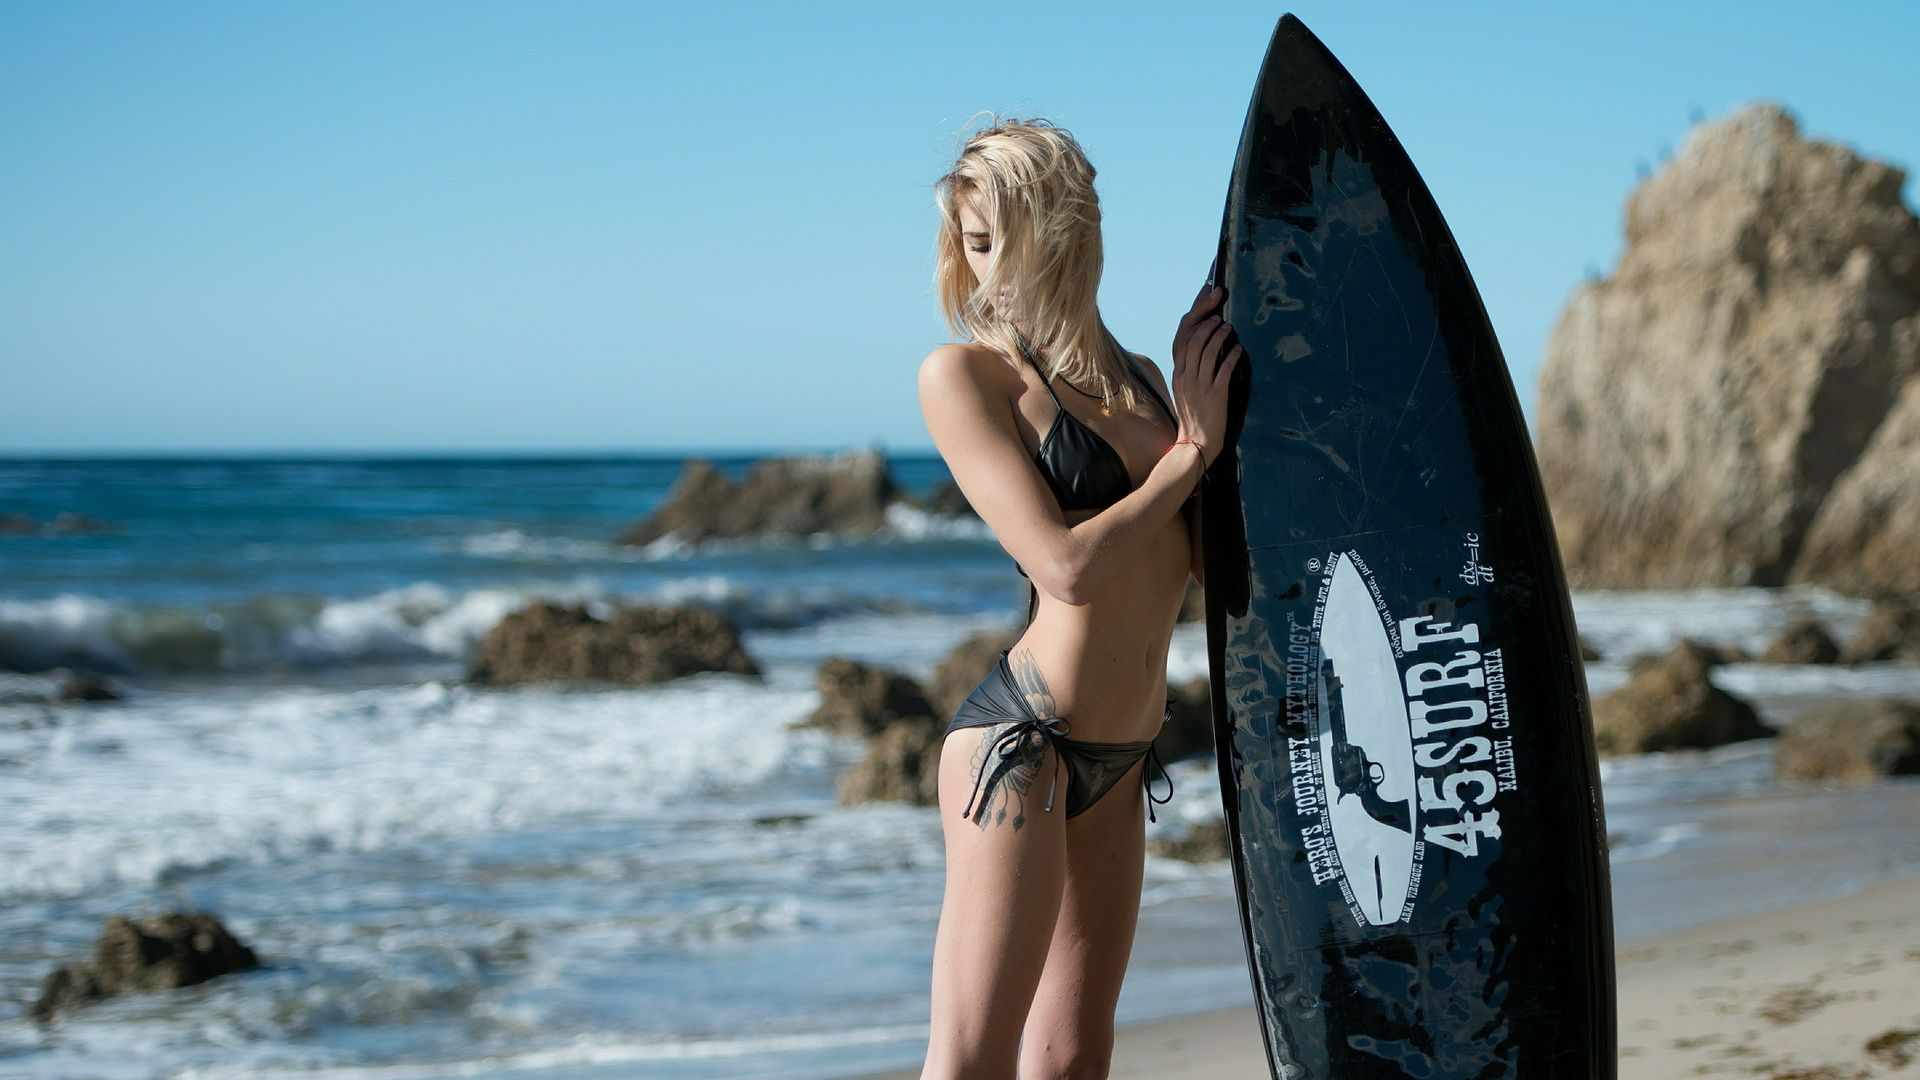 Surfer Girl picture hd